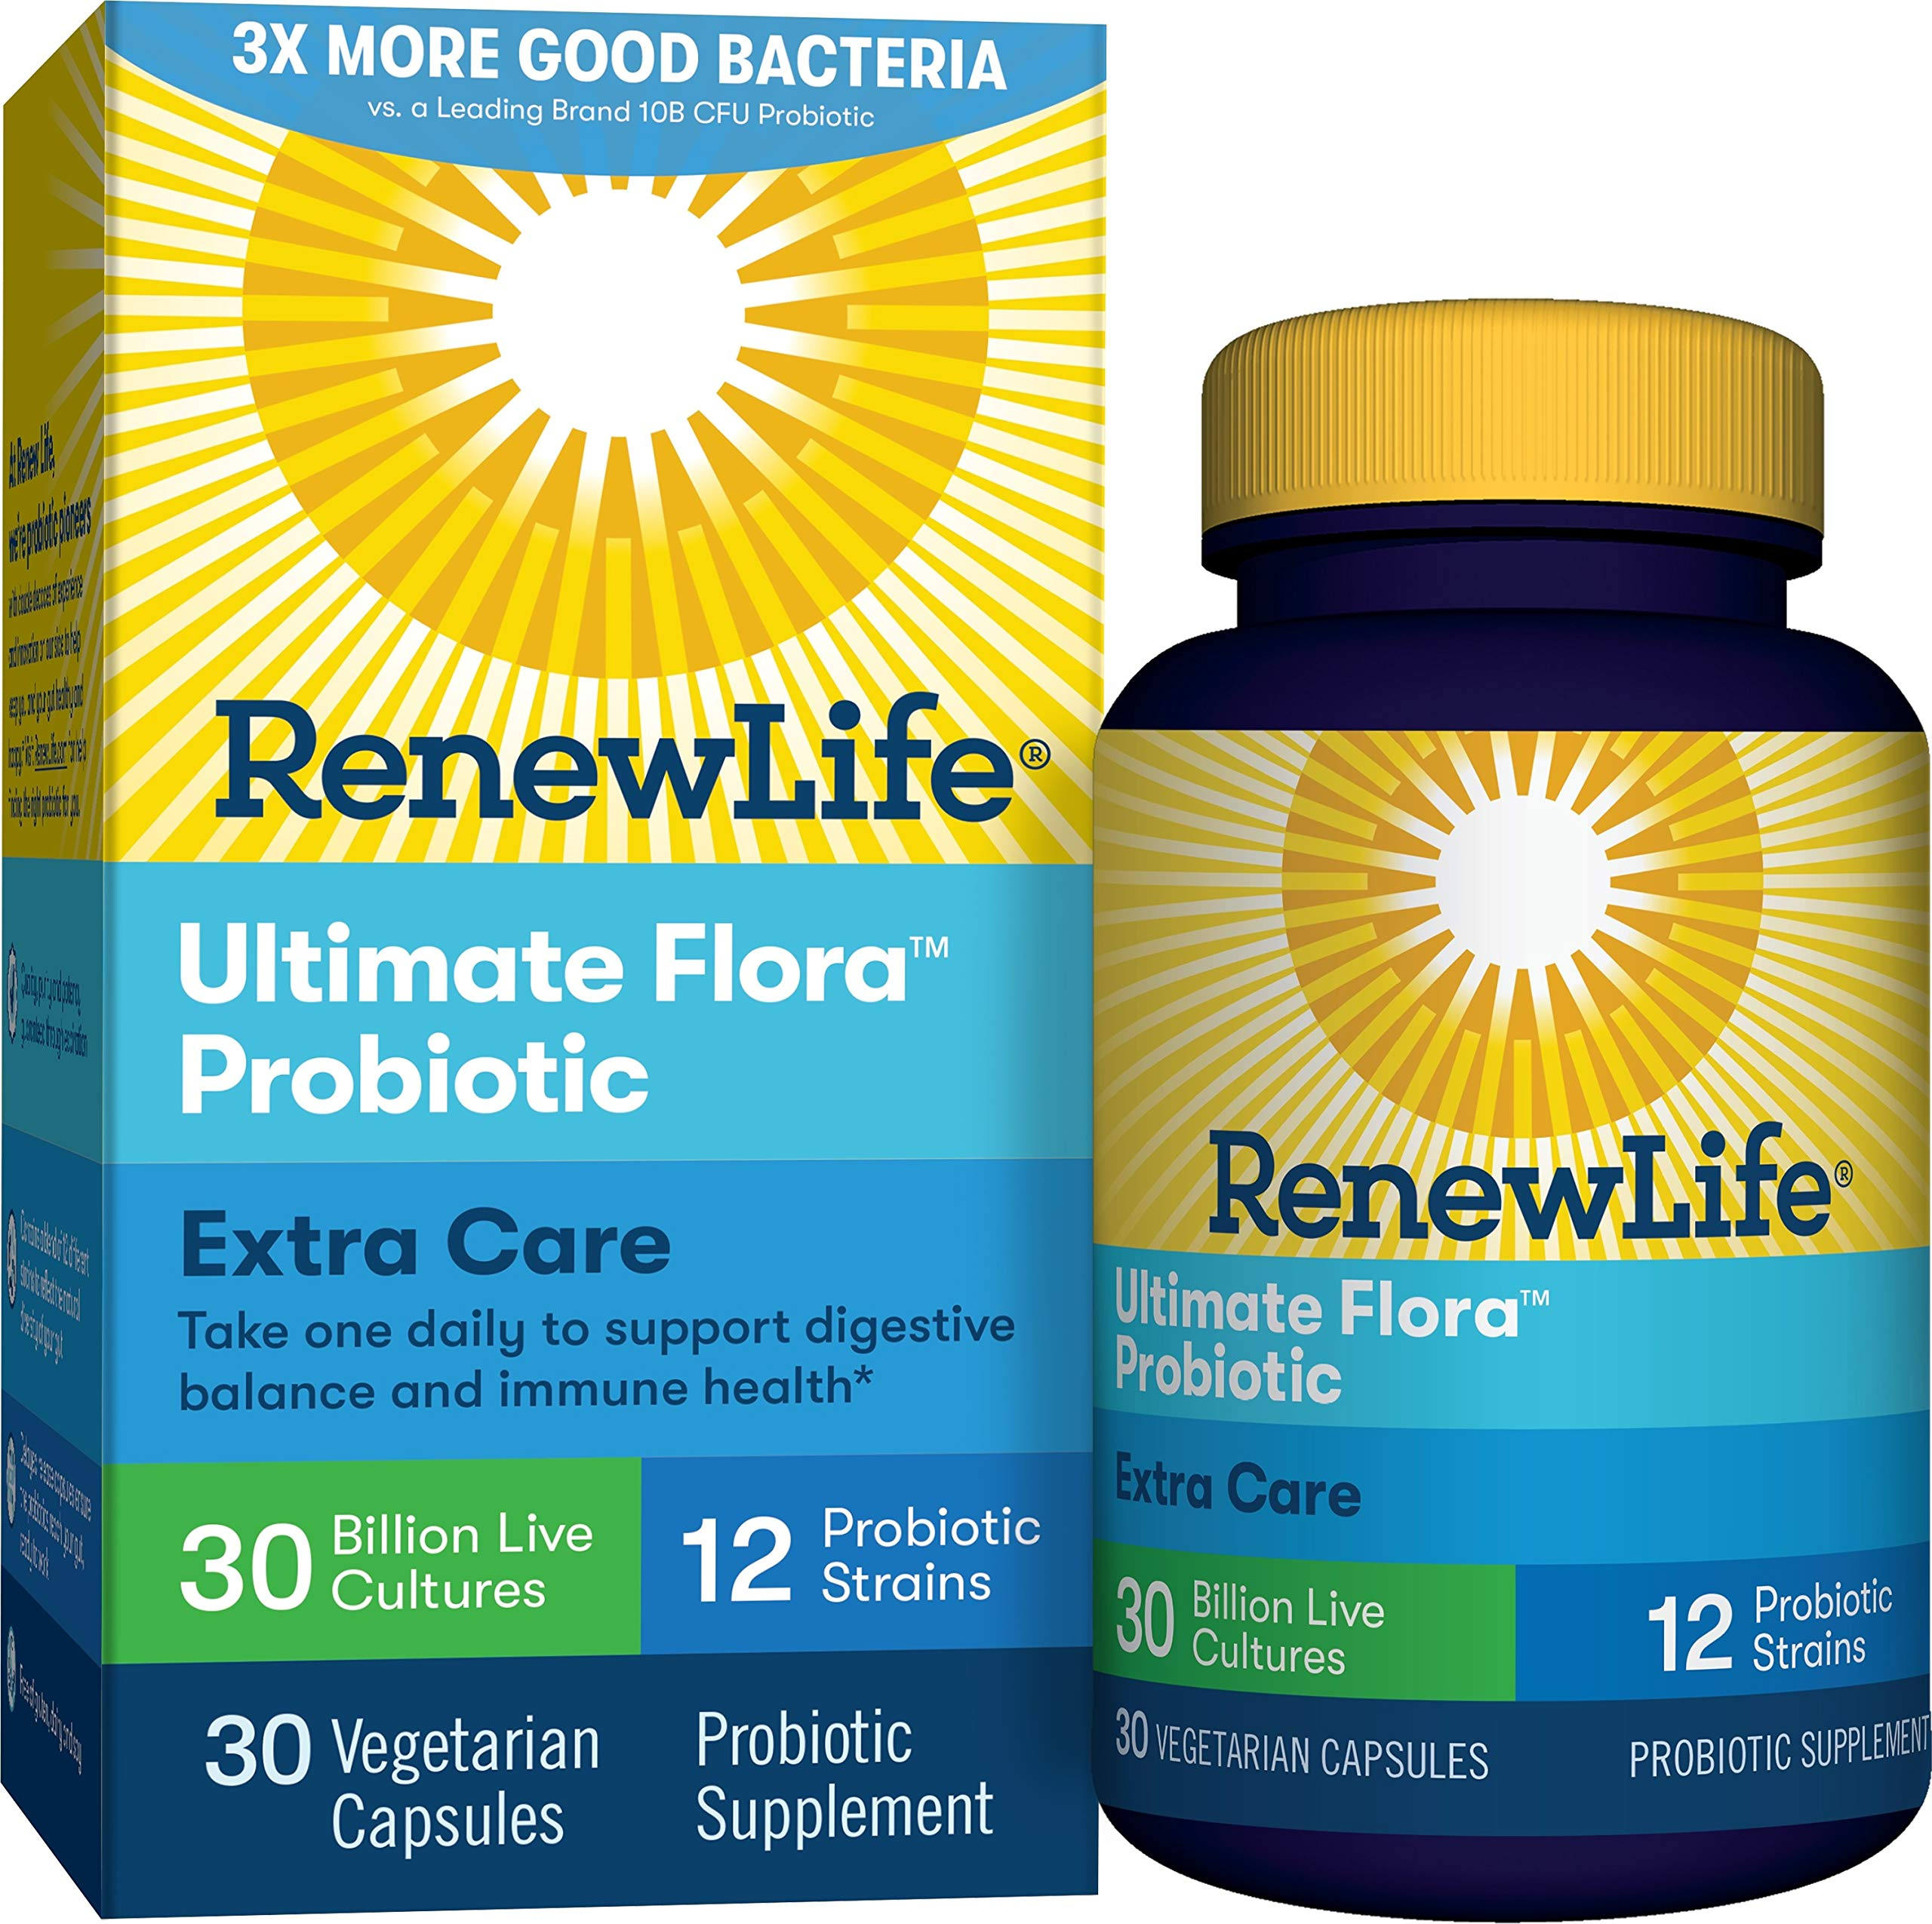 Renew Life Adult Probiotic - Ultimate Flora  Extra Care Probiotic Supplement - Gluten, Dairy & Soy Free - 30 Billion CFU - 30 Vegetarian Capsules (Packaging May Vary) by Renew Life